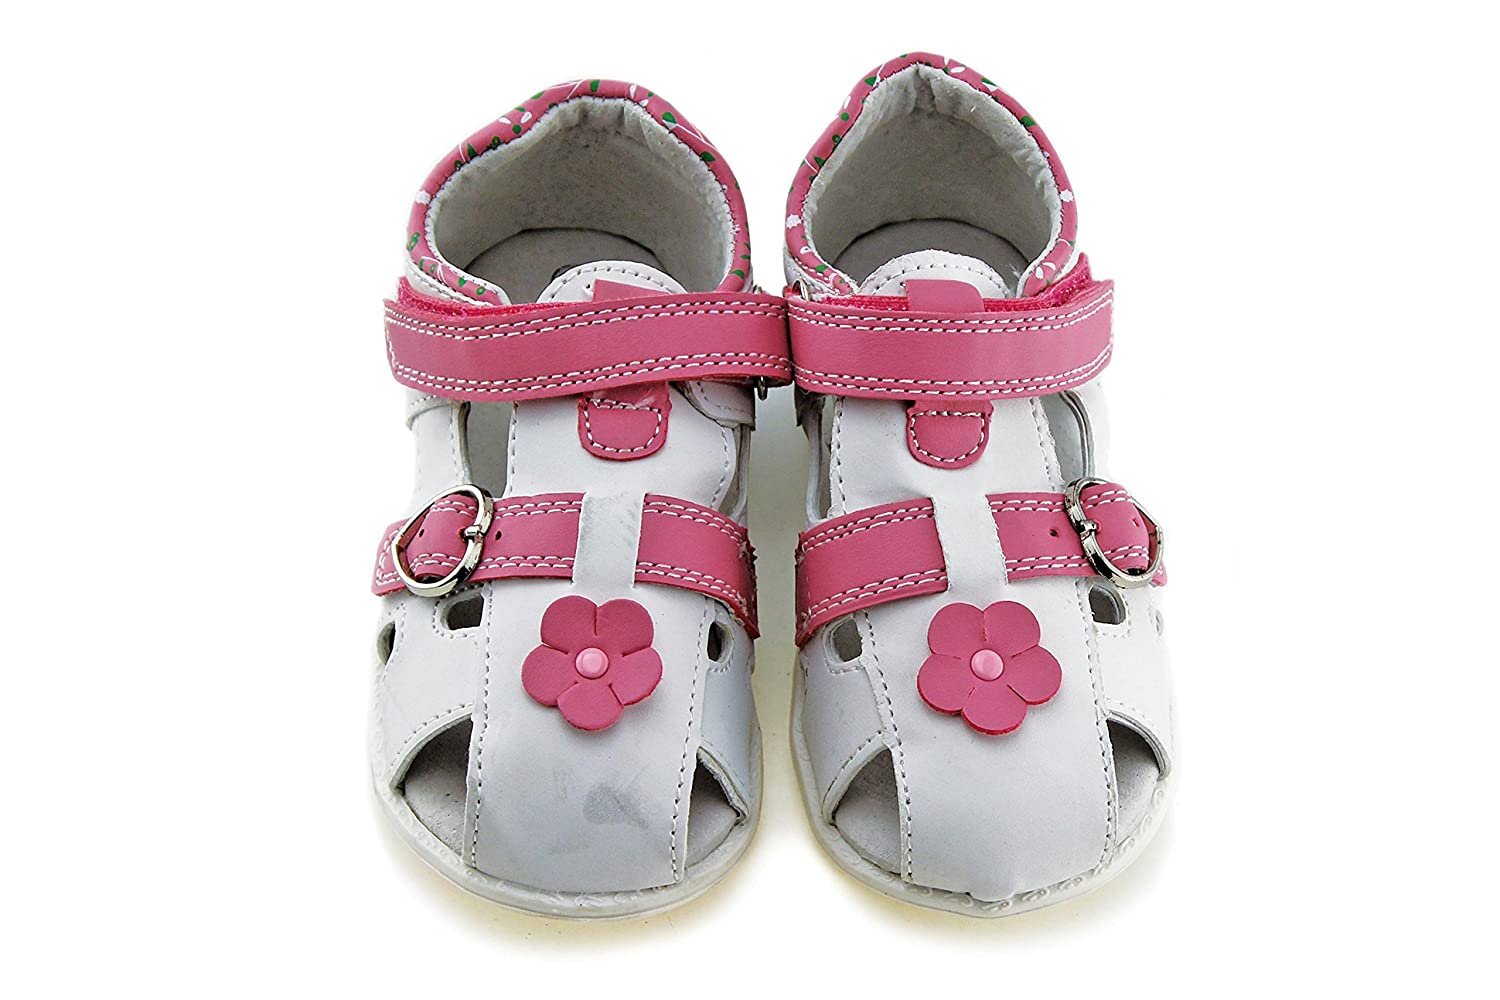 Toddler//Little Kid Jabasic Kids Summer Outdoor Sandals Boys Girls Closed-Toe Leather Lined Strap Beach Shoes